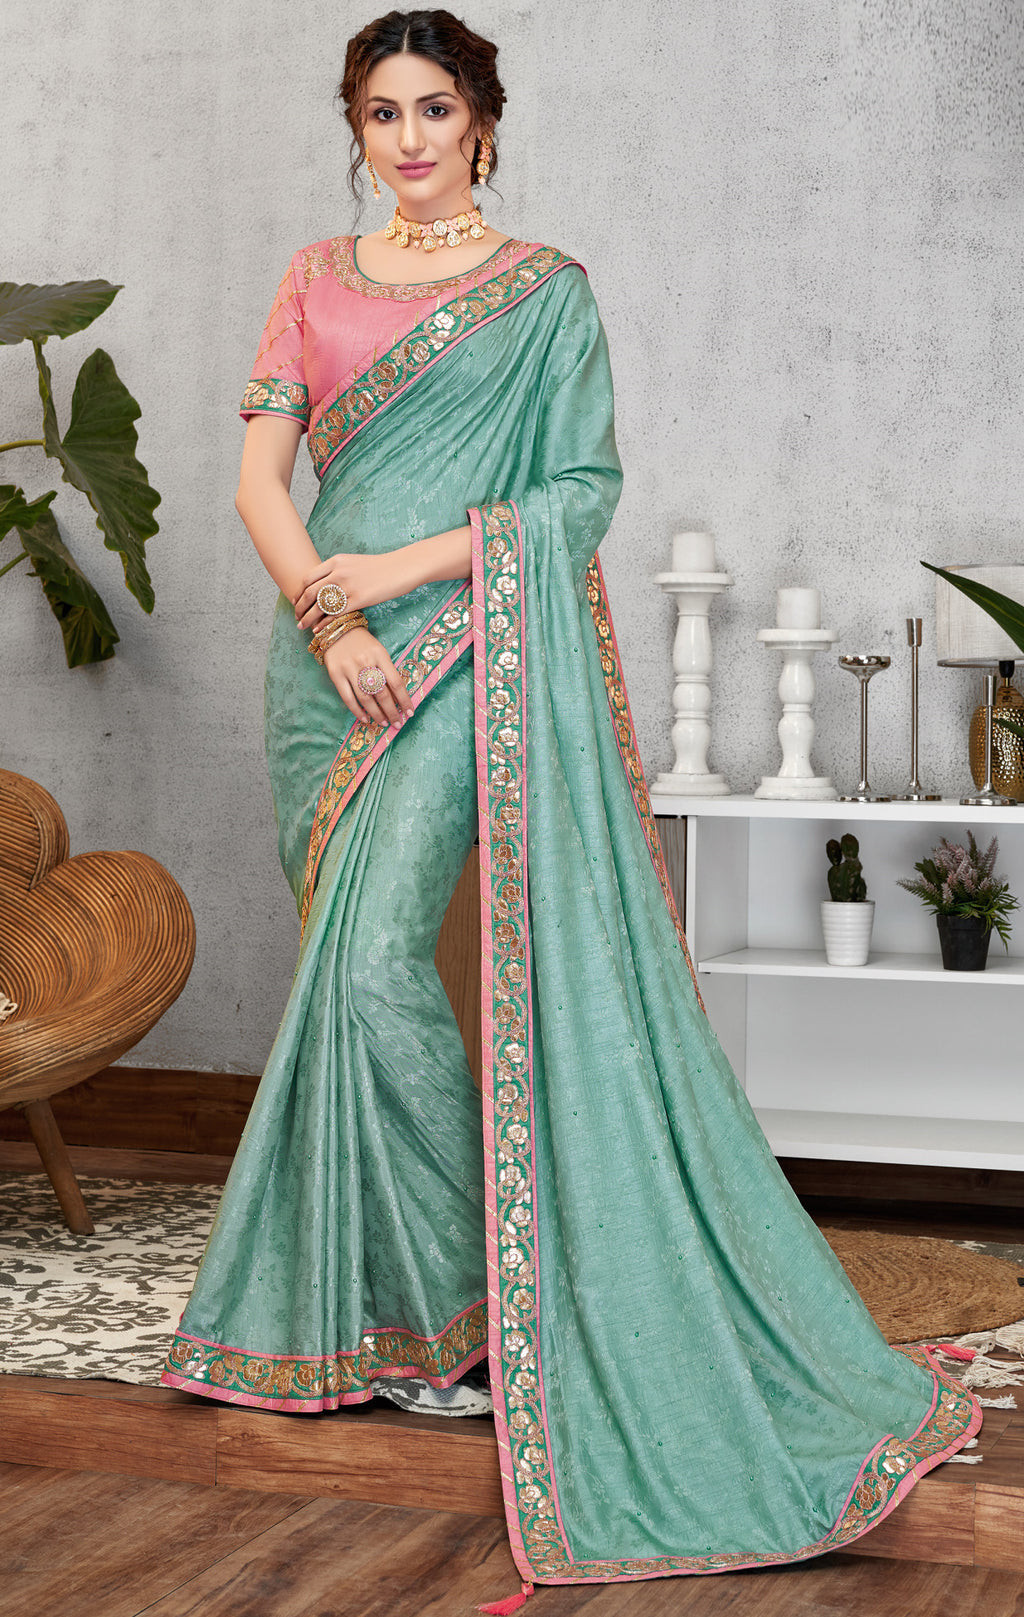 Aqua Blue Color Jacquard Crepe Lovely Occasion Wear Sarees NYF-6117